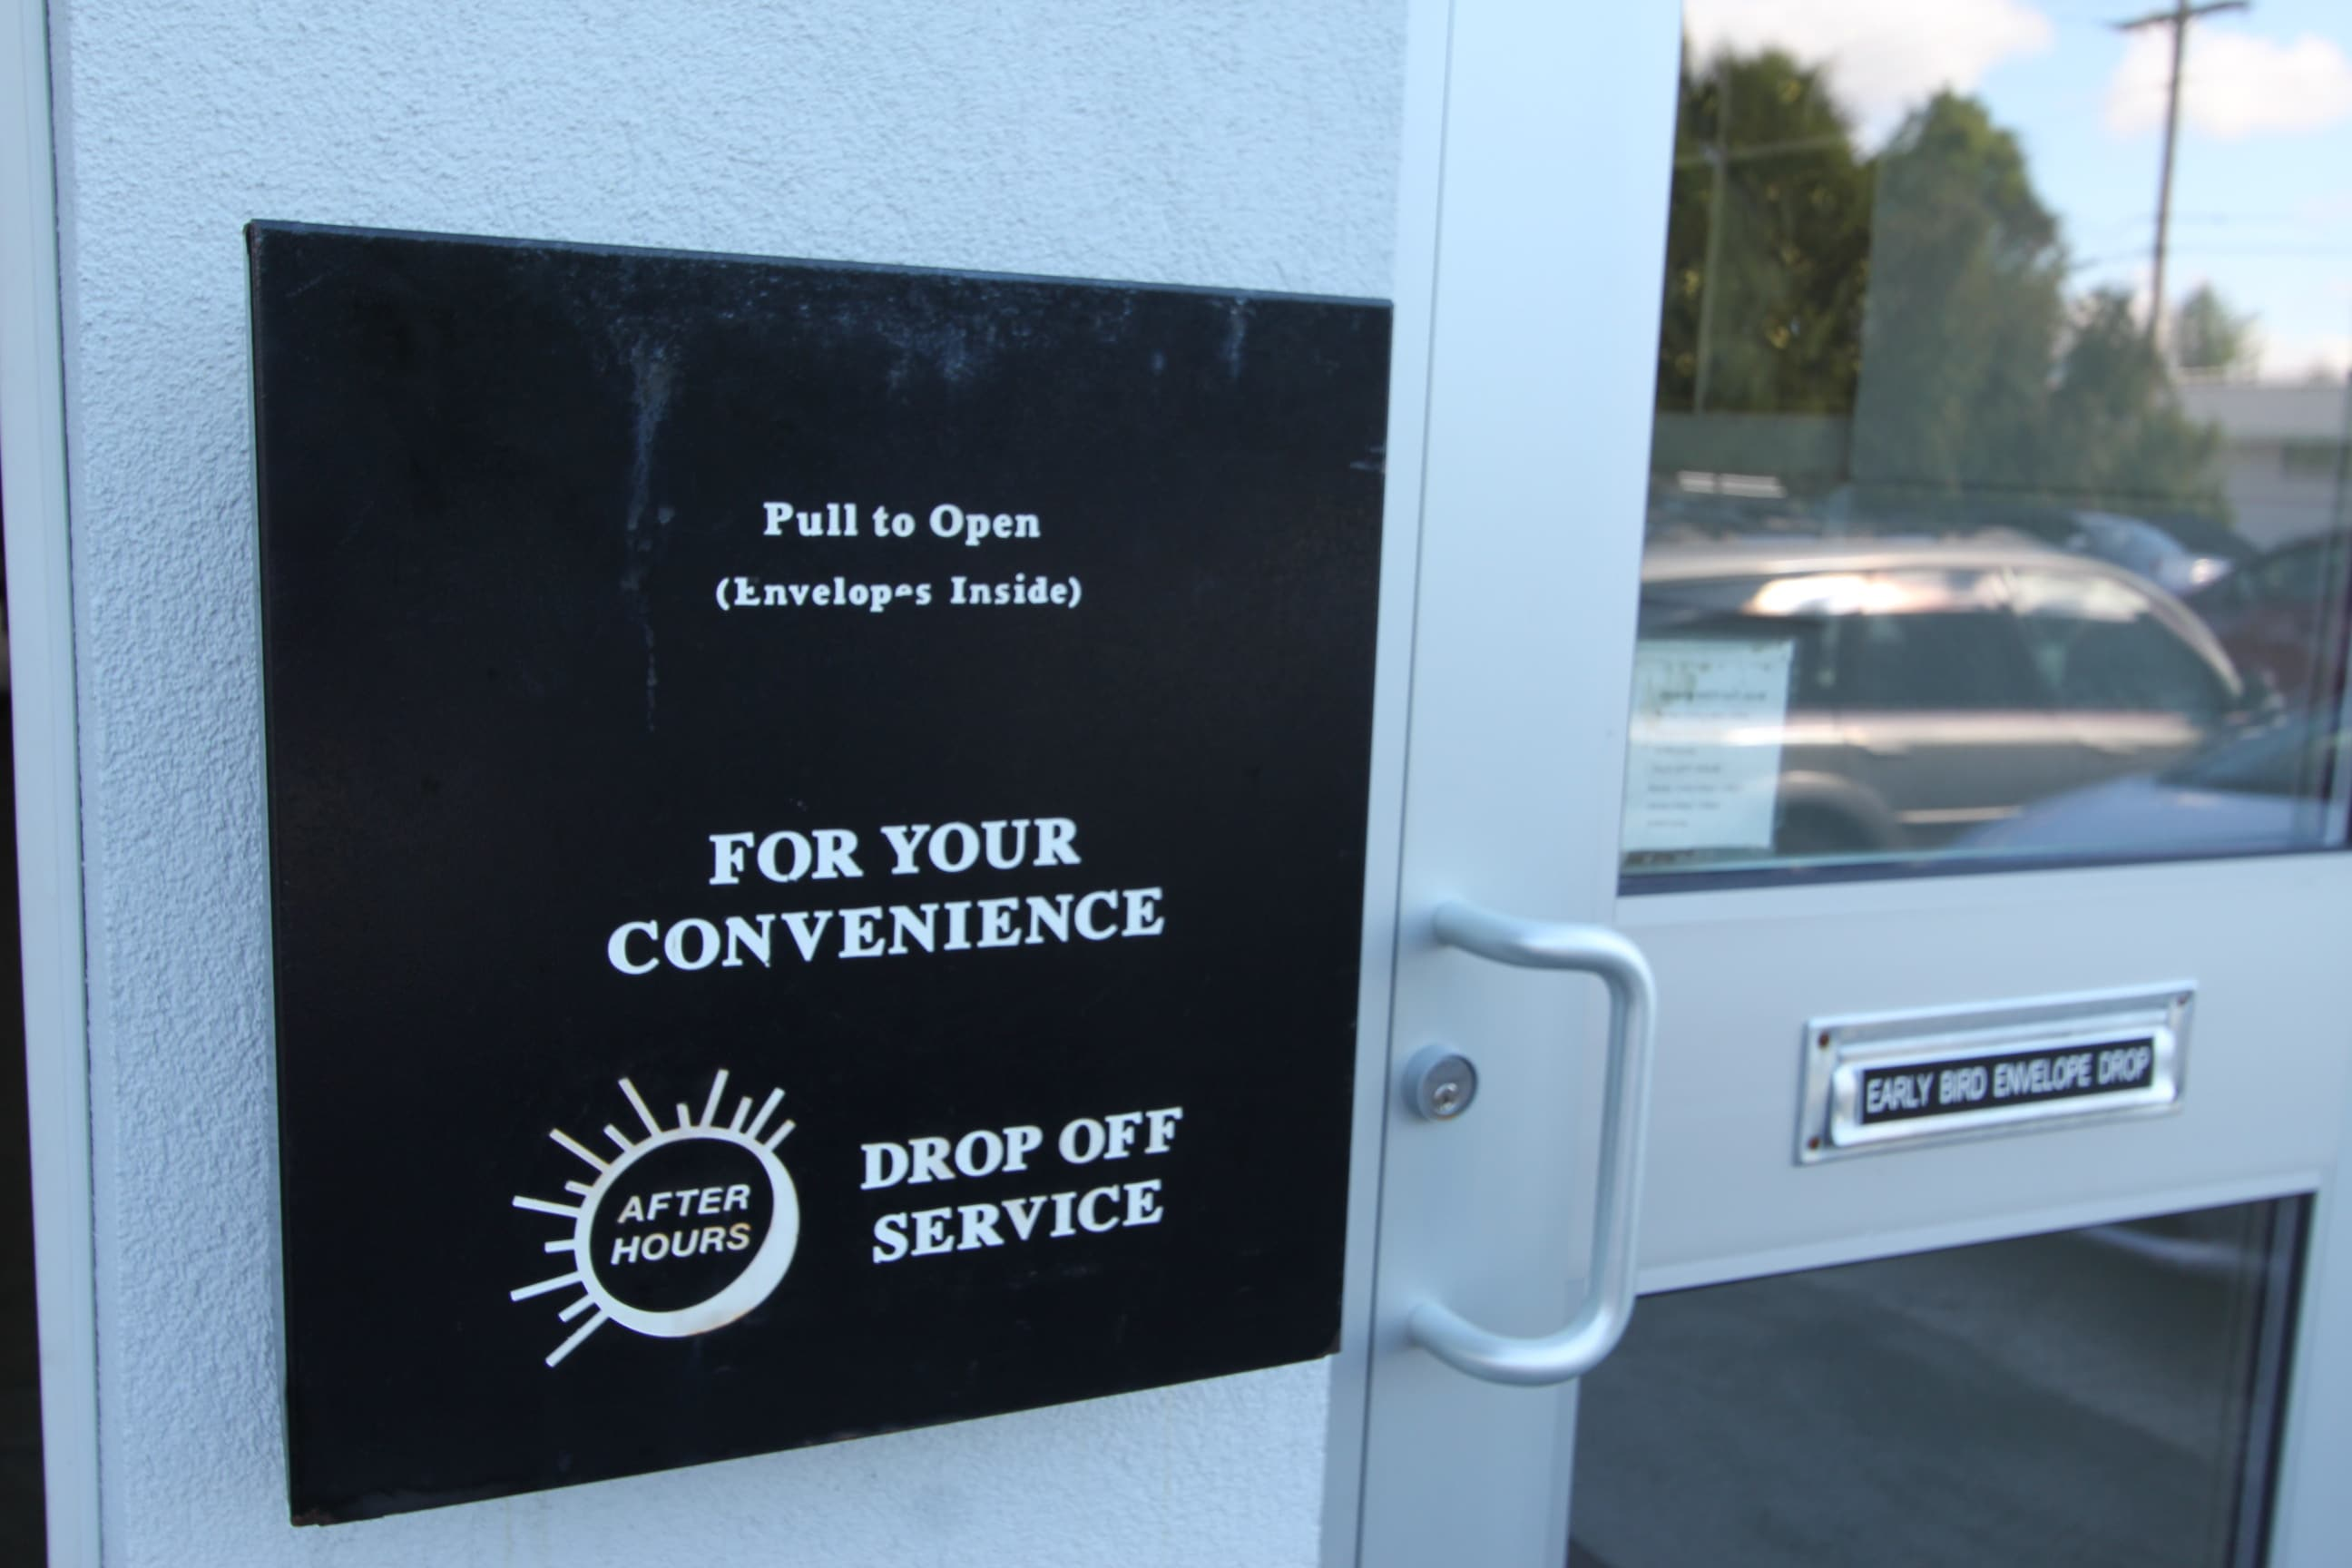 24 hour drop-off plaque at our car service center